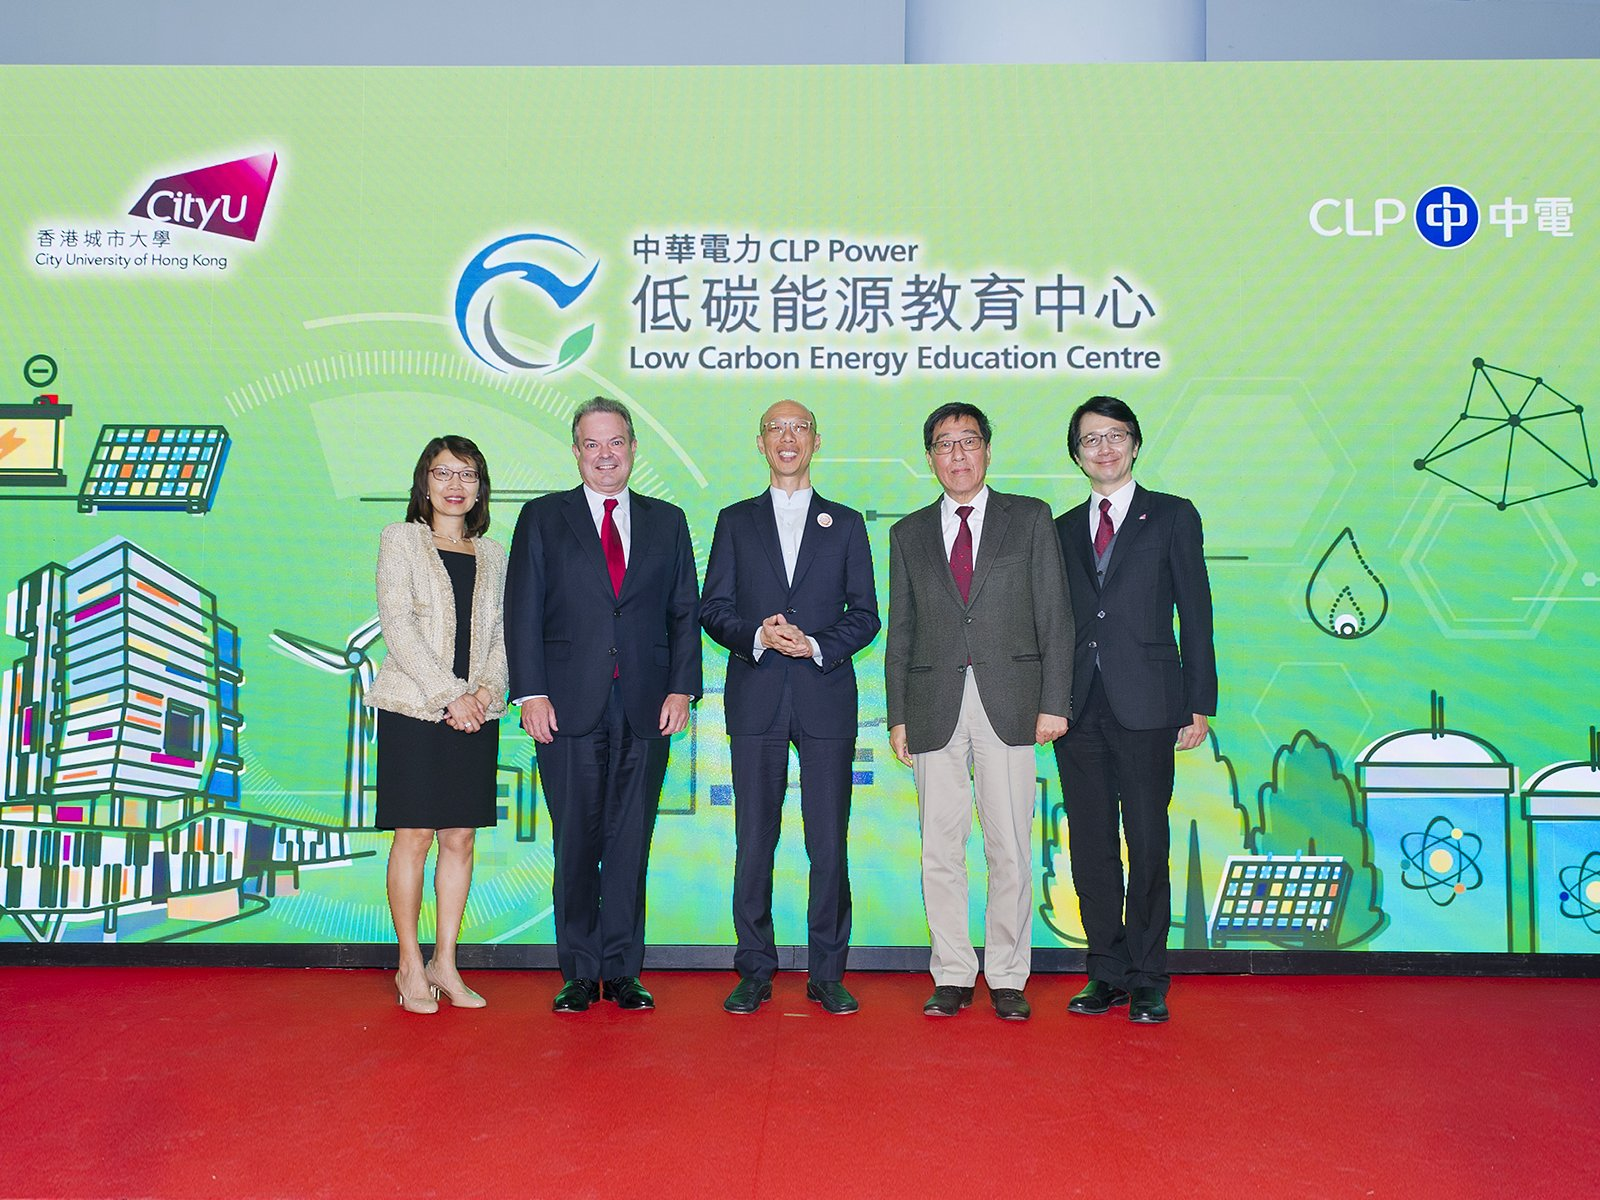 (From left) Mrs Betty Yuen, Group Director and Vice-Chairman of CLP Power, Mr Richard Lancaster, Chief Executive Officer of CLP Holdings, Mr Wong Kam-sing, Secretary for the Environment of the HKSAR, Professor Way Kuo, CityU President, and Professor Matthew Lee, CityU Vice-President of (Development and External Relations), officiate at the opening ceremony of the CLP Power Low Carbon Energy Education Centre.